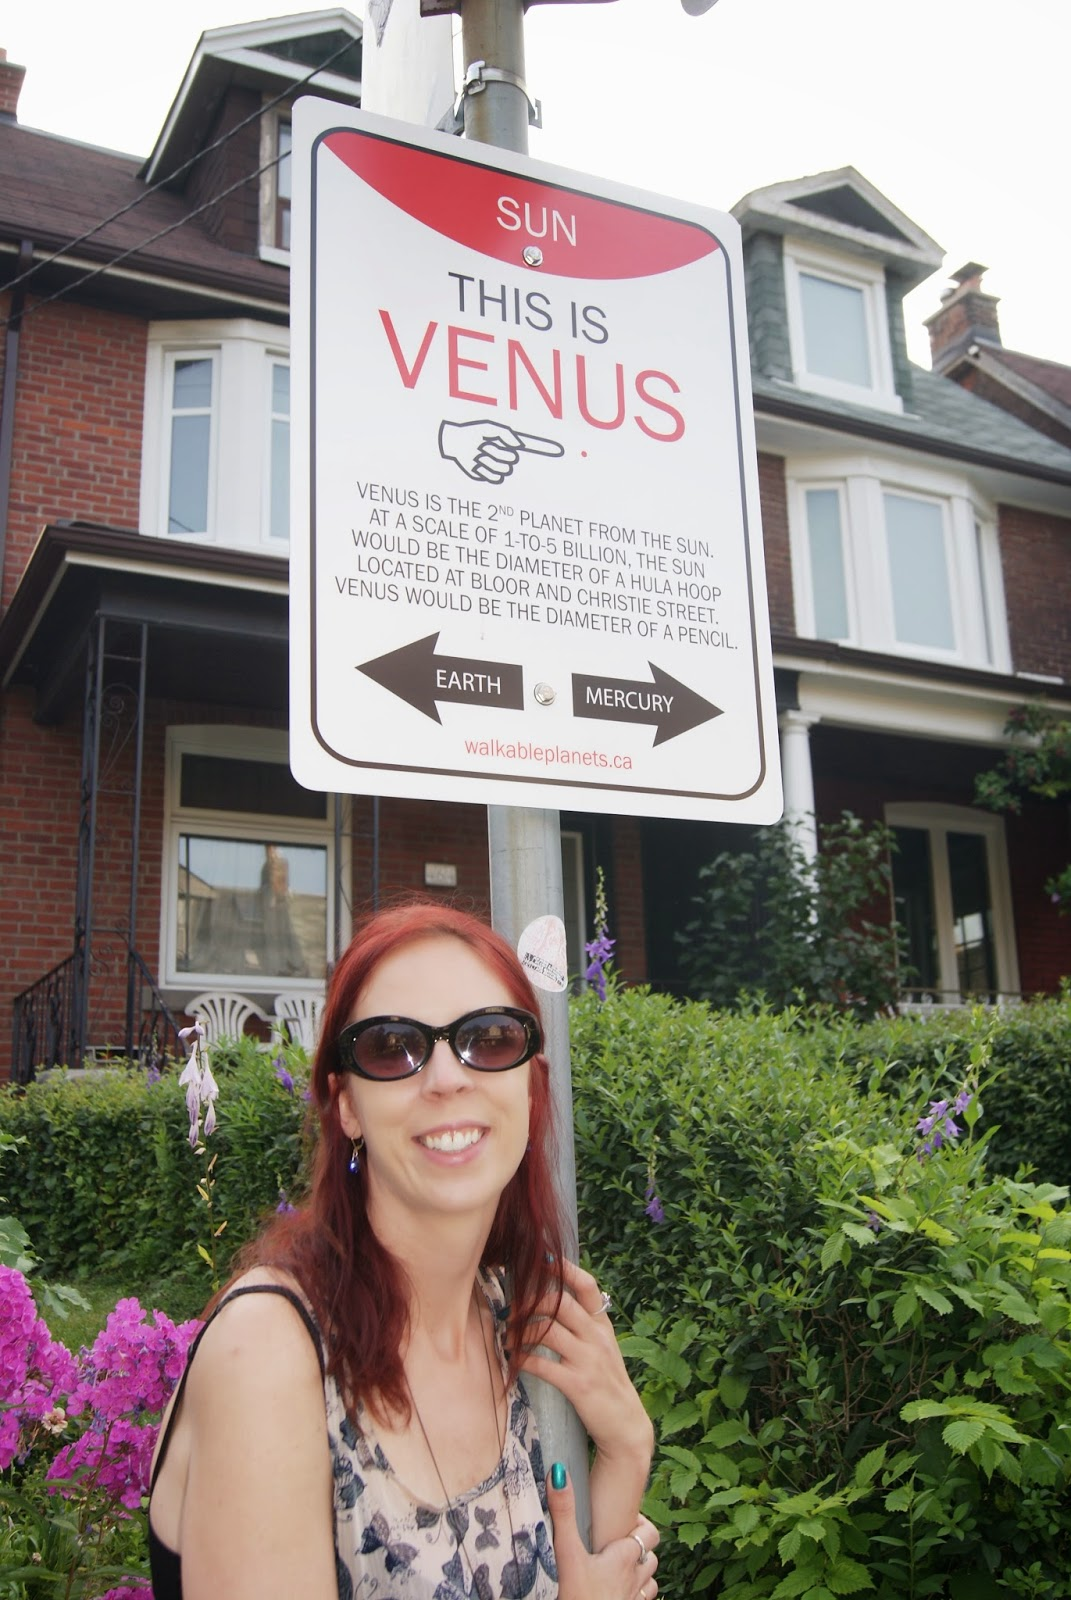 Venus Wayfinding Sign from Walkable Planets scale solar system by Jode Roberts in Toronto, Public, Installation, Community, Project, Intervention, Explore, Grace Street, Gore Vale Avenue, Jane's Walk, 100-in1 Day, Ontario, Canada, Culture, Lifestyle, Galaxy, Art, Artist